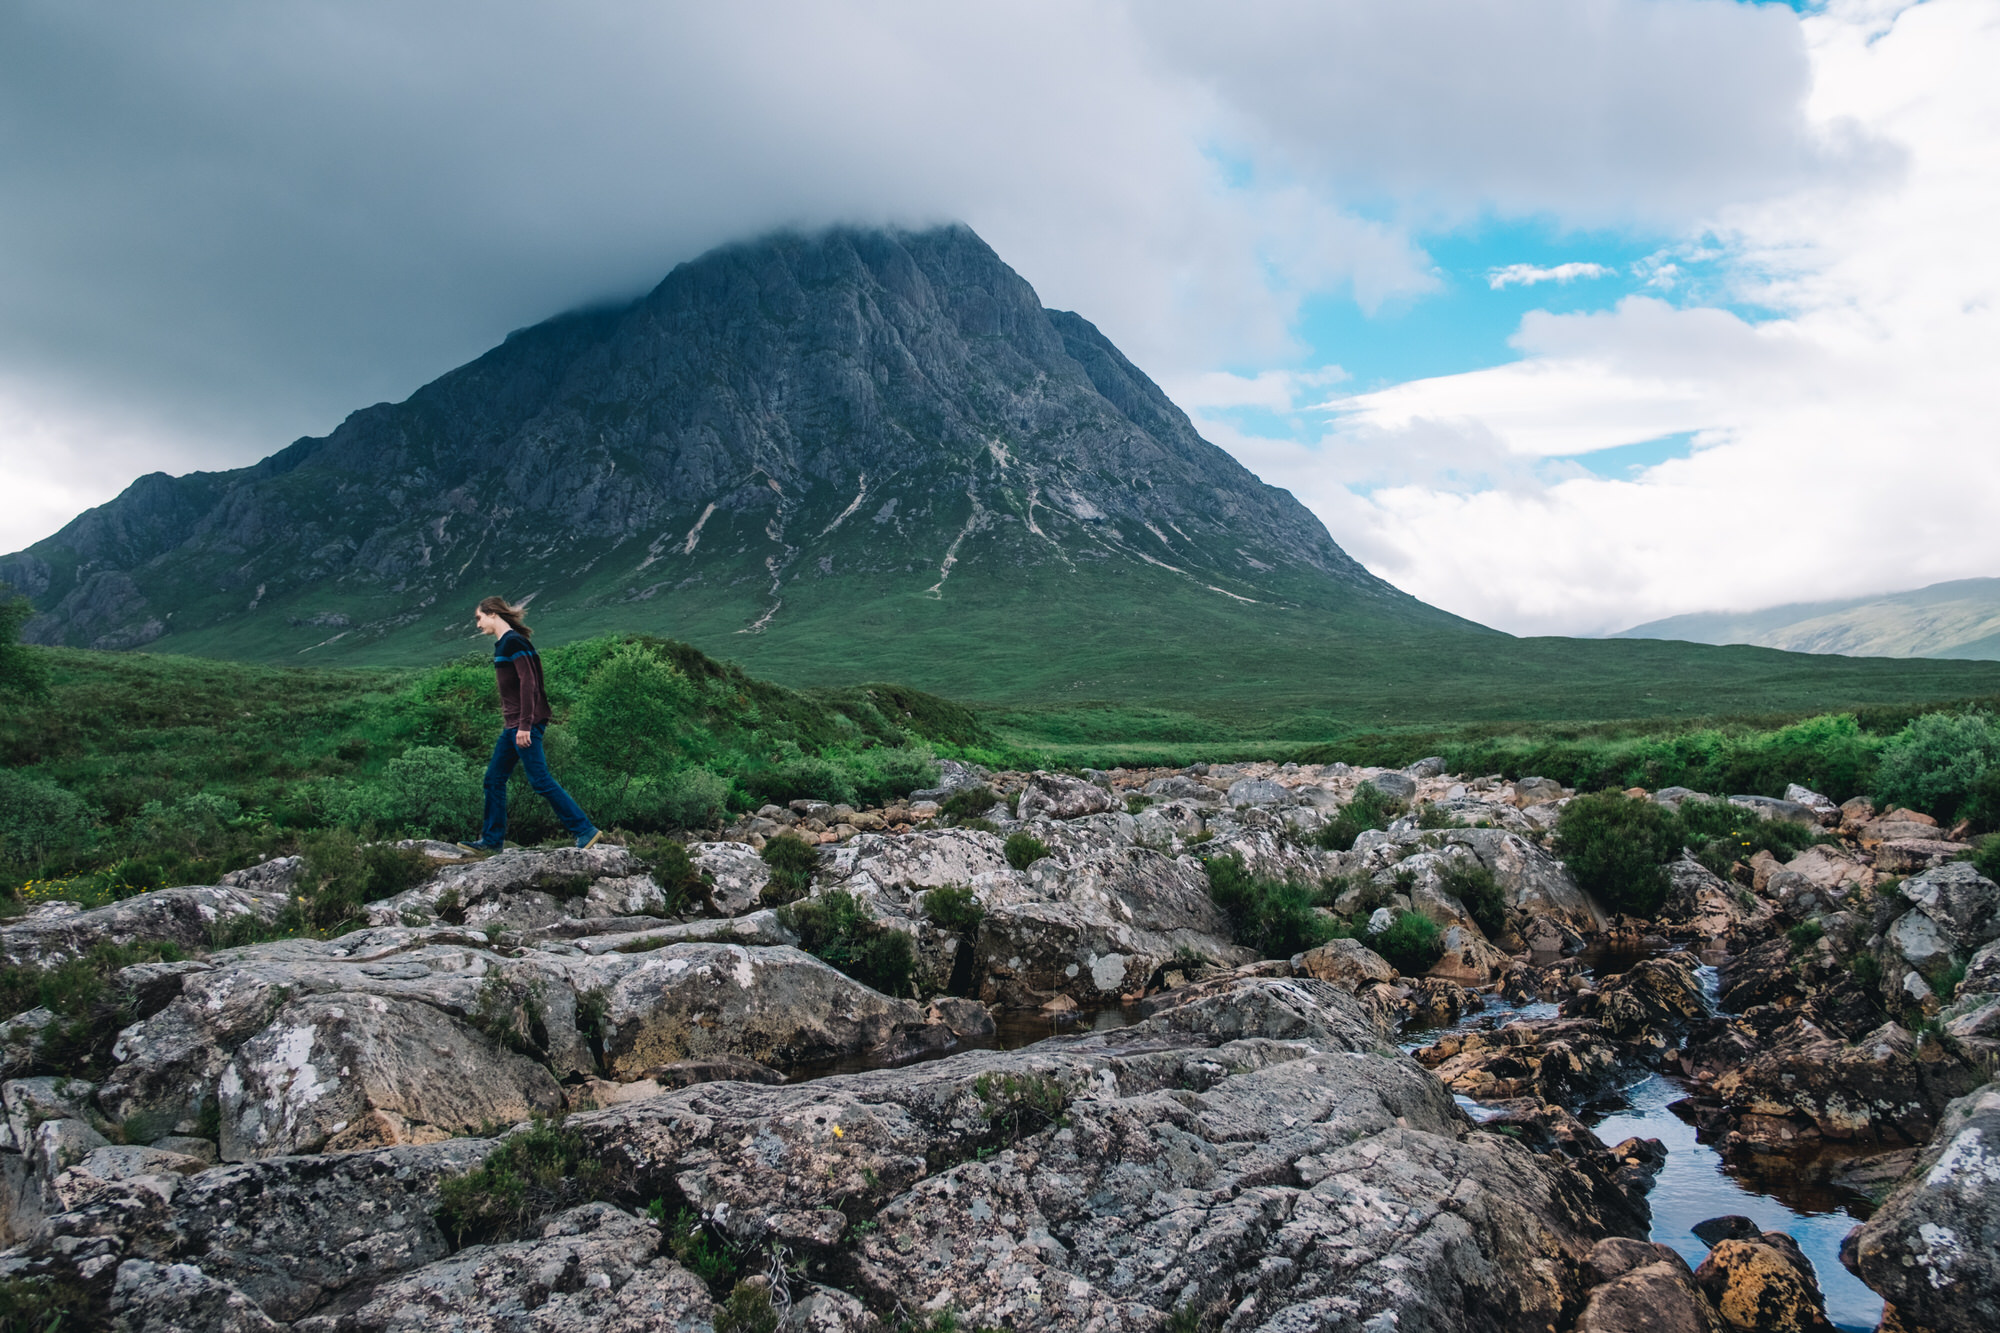 Teenager at the foot of Buachaille Etive Mor, Glencoe